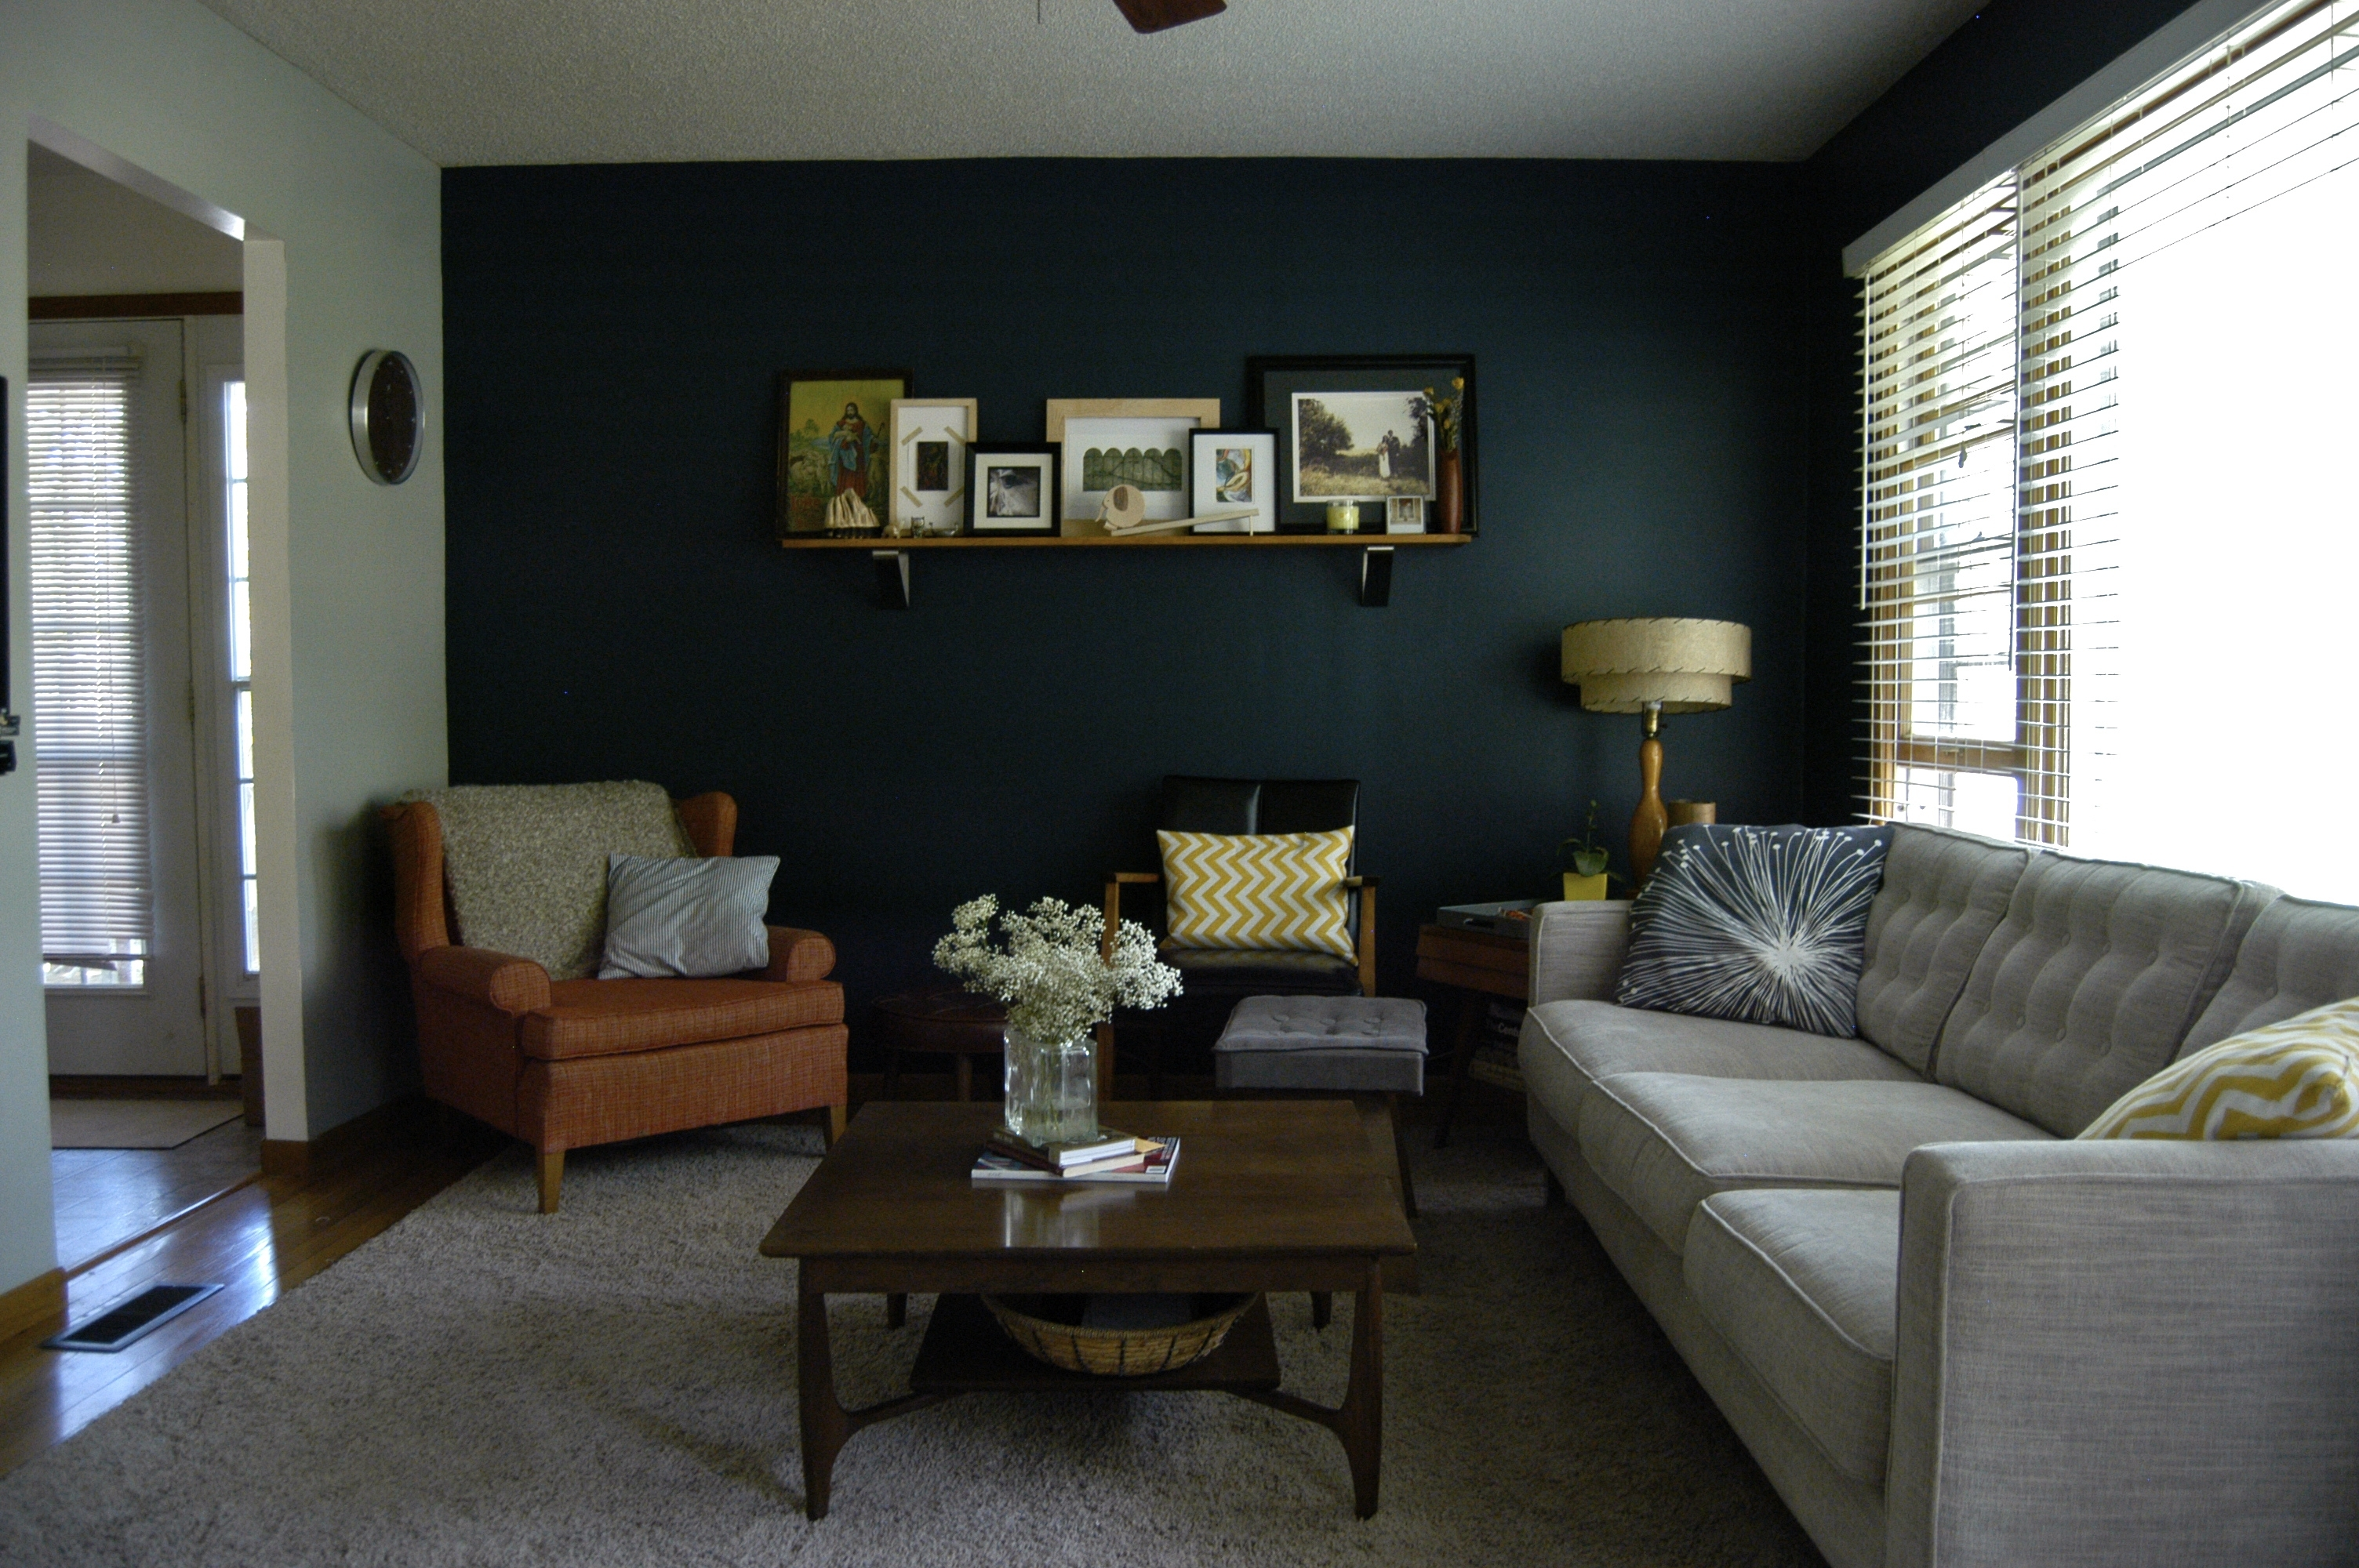 Our New Navy Accent Wall! The Other Walls Are A Medium Gray Pertaining To 2017 Wall Accents With Paint (View 11 of 15)